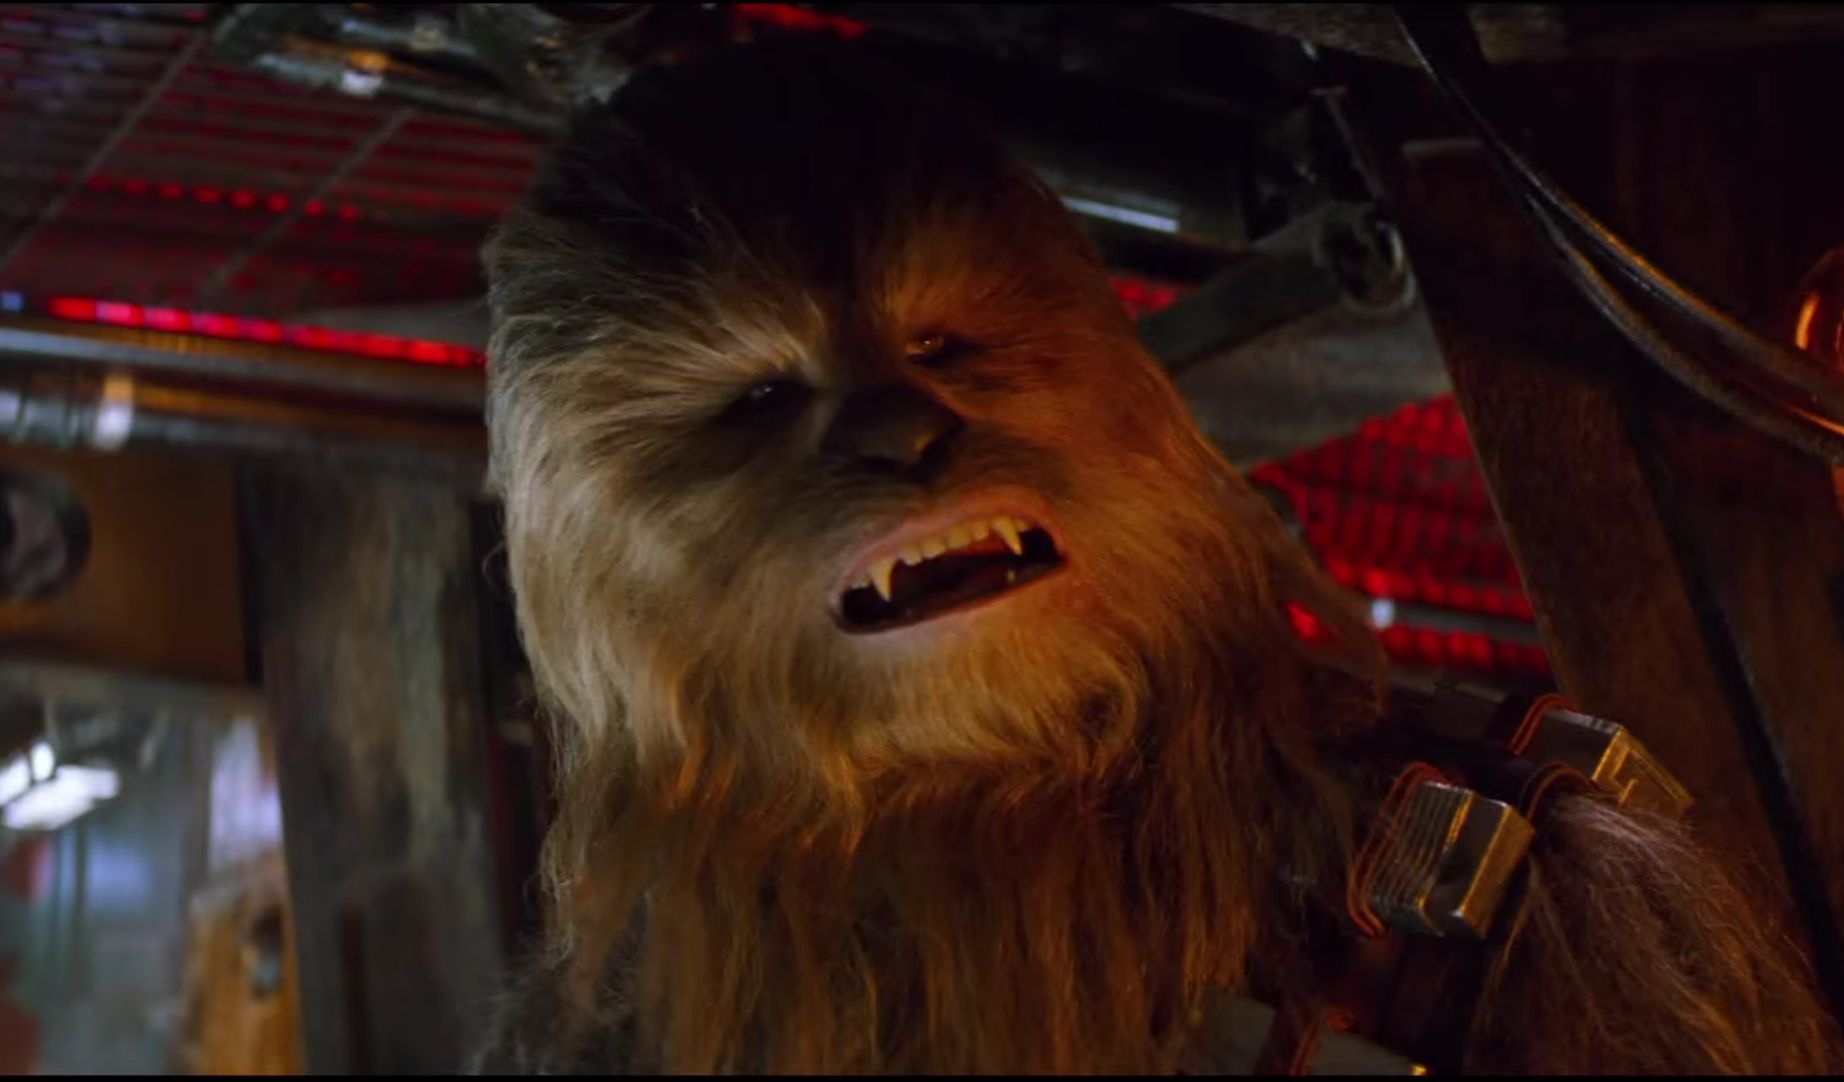 Star Wars: Chewbacca Rips Unkar Plutt's Arm out of its Socket in Deleted Scene from The Force Awakens   Den of Geek